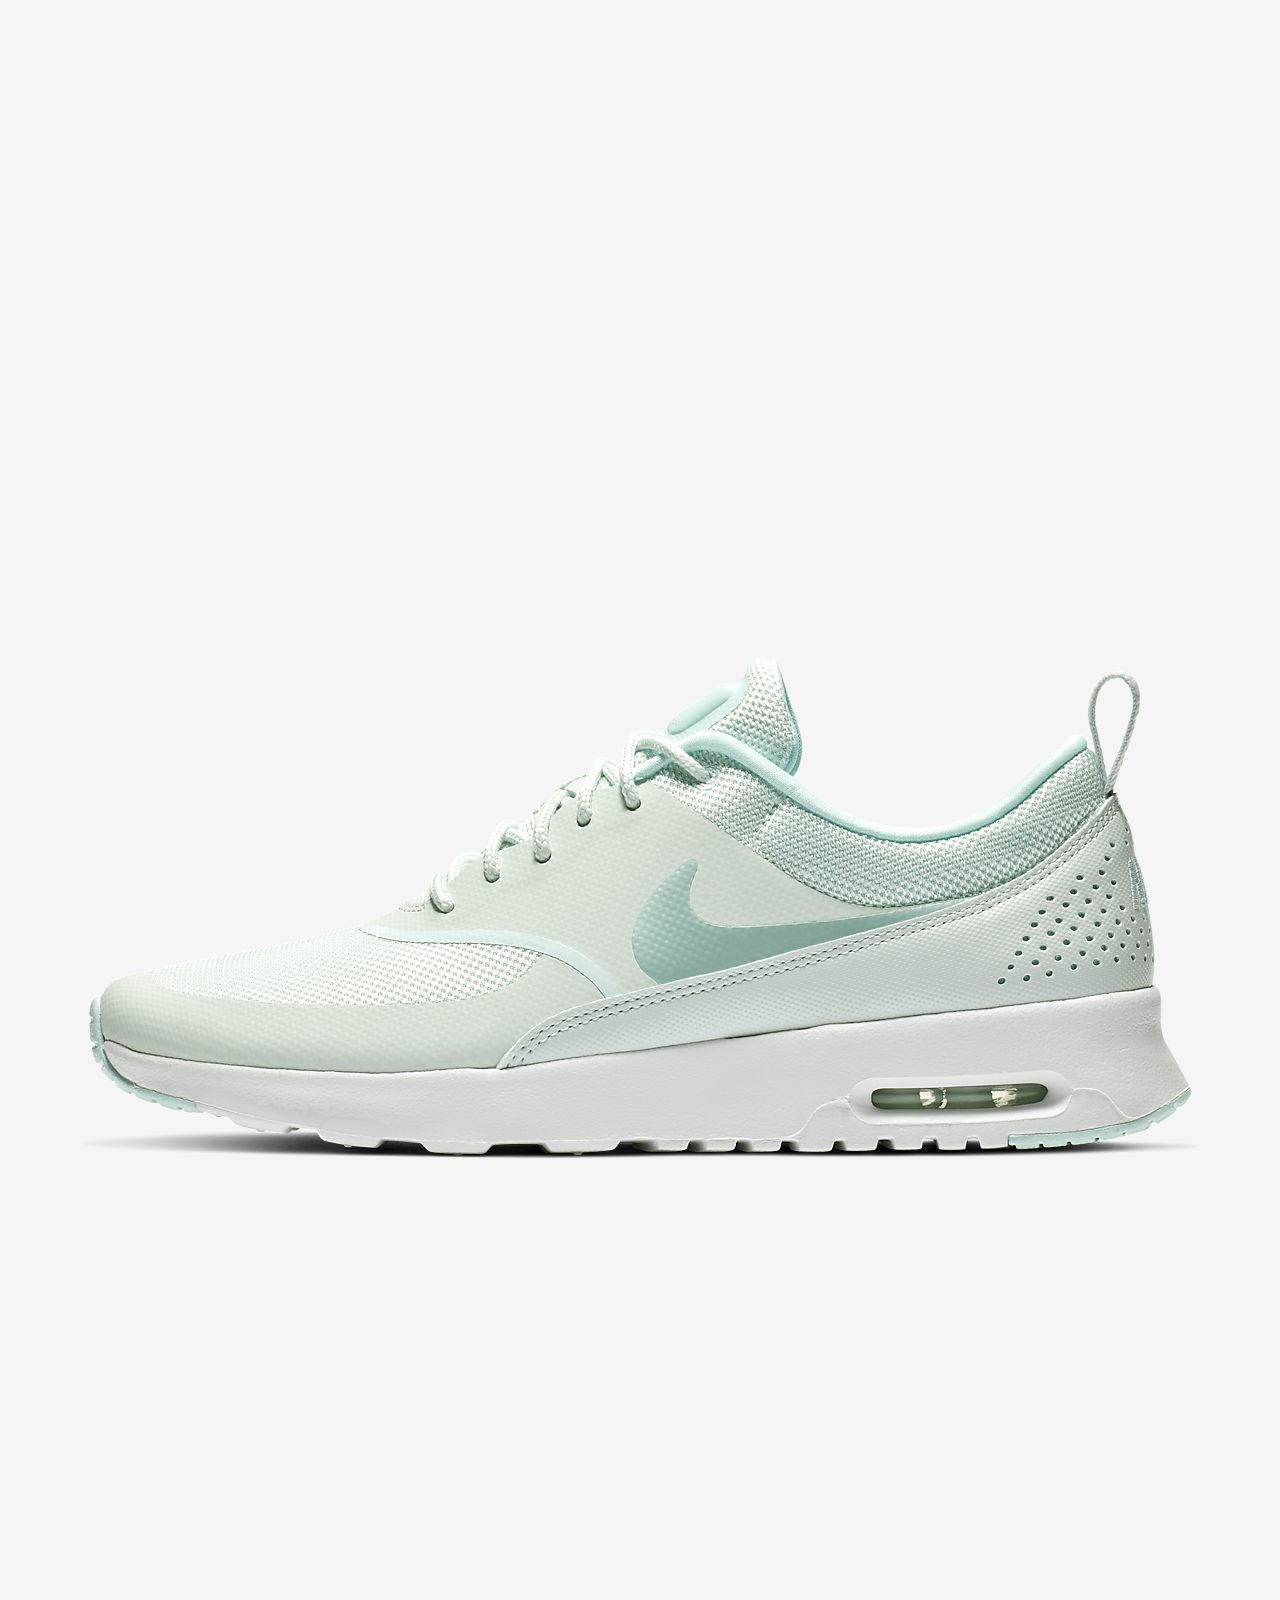 sports shoes 1446a e75bb ... Chaussure Nike Air Max Thea pour Femme